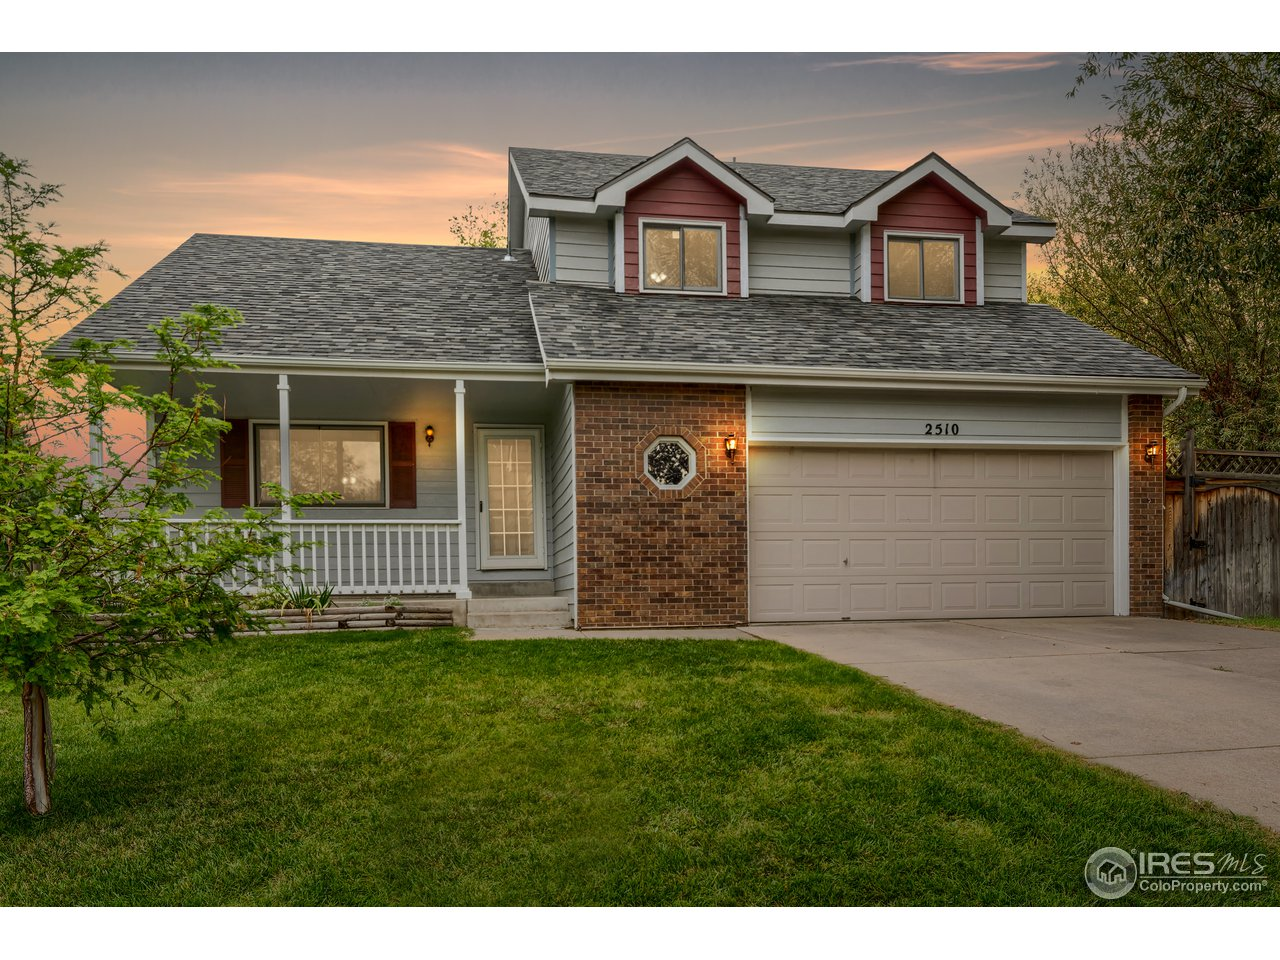 Beautiful 4 bed, 3.5 bath home backing to the Highland Hills Golf Course! 2-story home offers open floor plan & vaulted ceilings. Updated kitchen boasts new granite counters, stainless appliances & a separate dining room with bay windows. Cozy up by the family room fireplace. Relax on the patio of the backyard featuring a storage shed, RV parking & a power & dump station. New class 4 resistant roof. 2 car garage. Safe neighborhood in a great location close to many parks, shops & restaurants.